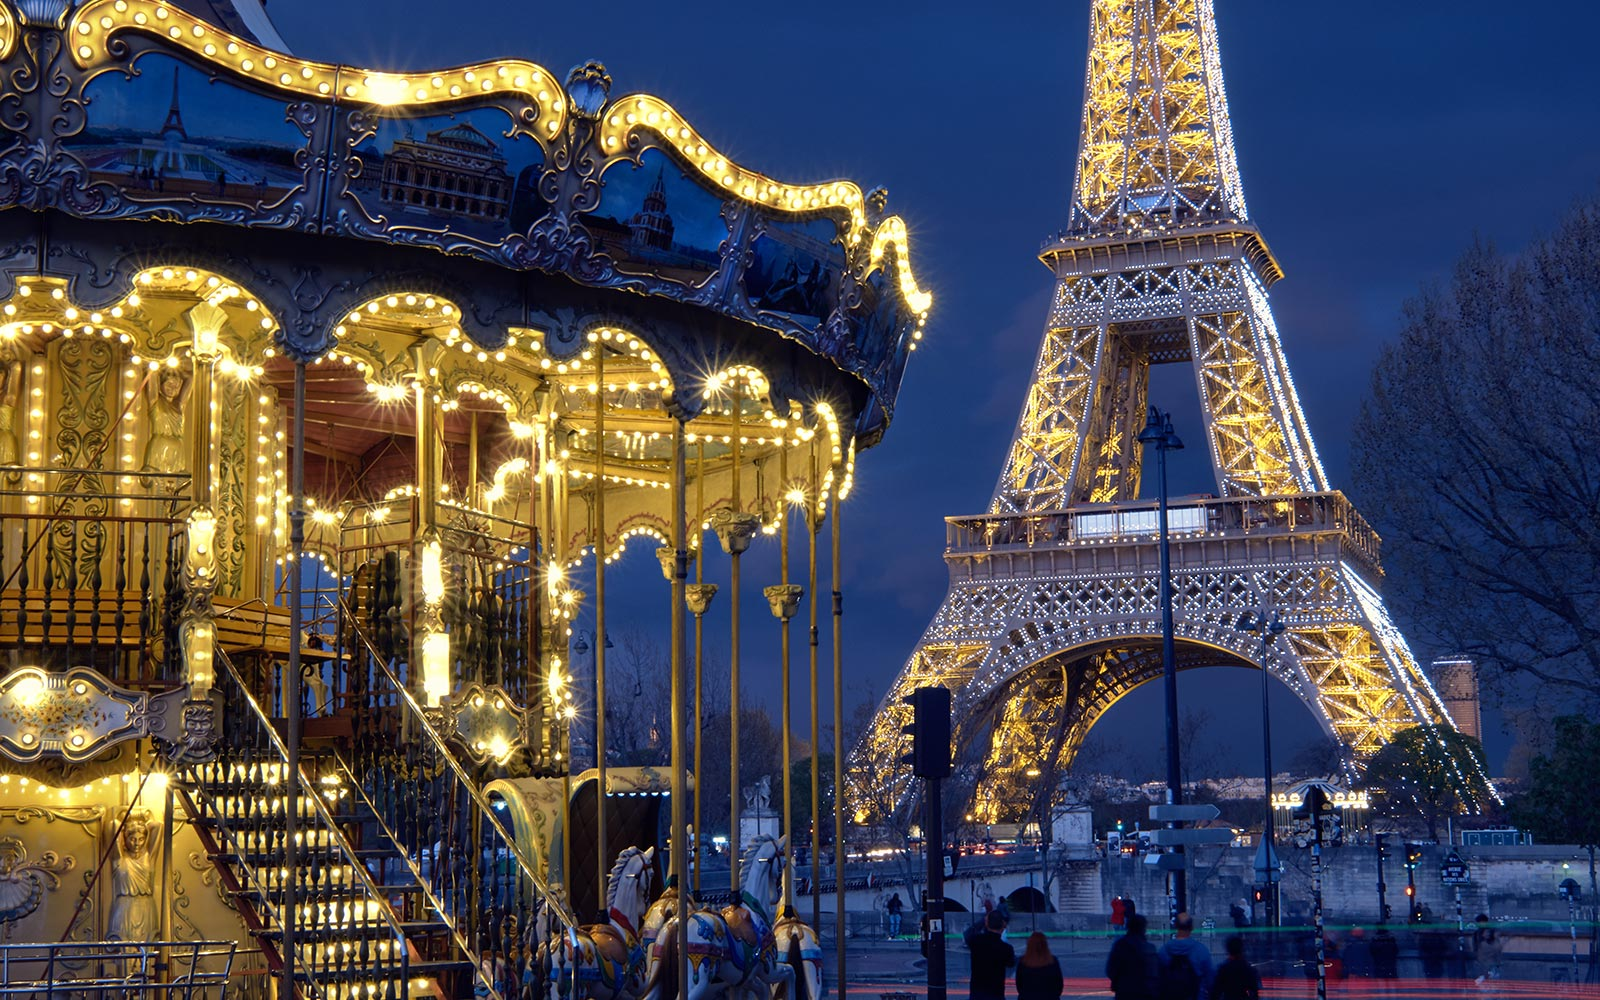 Eiffel Tower Landmark Paris France Carousel